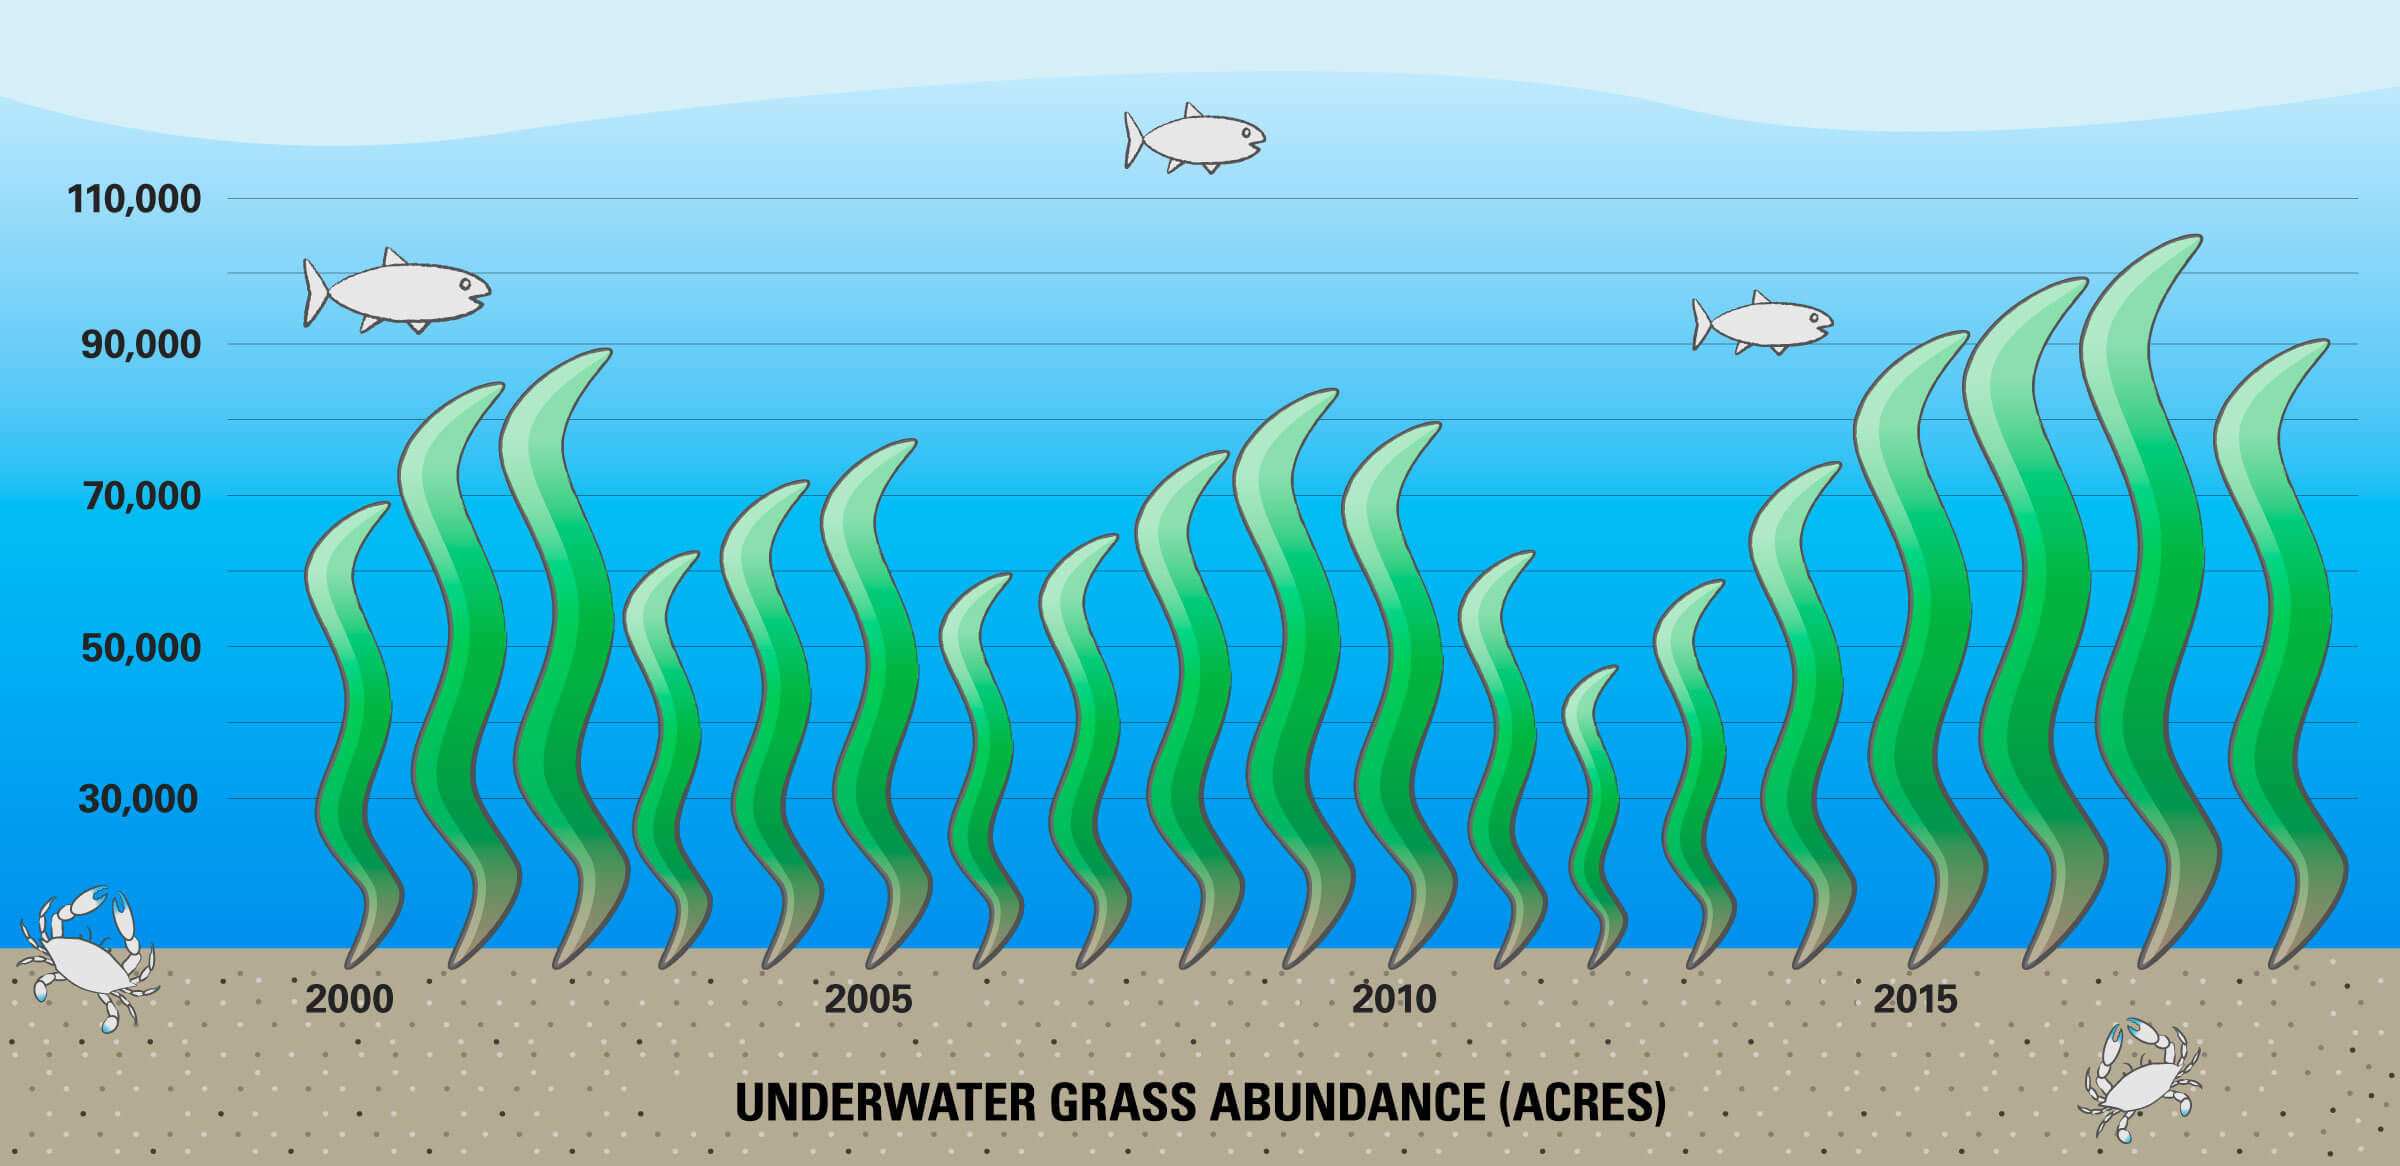 Bar graph illustrating the number of acres of underwater grasses in the Chesapeake Bay from 2000 to 2019.